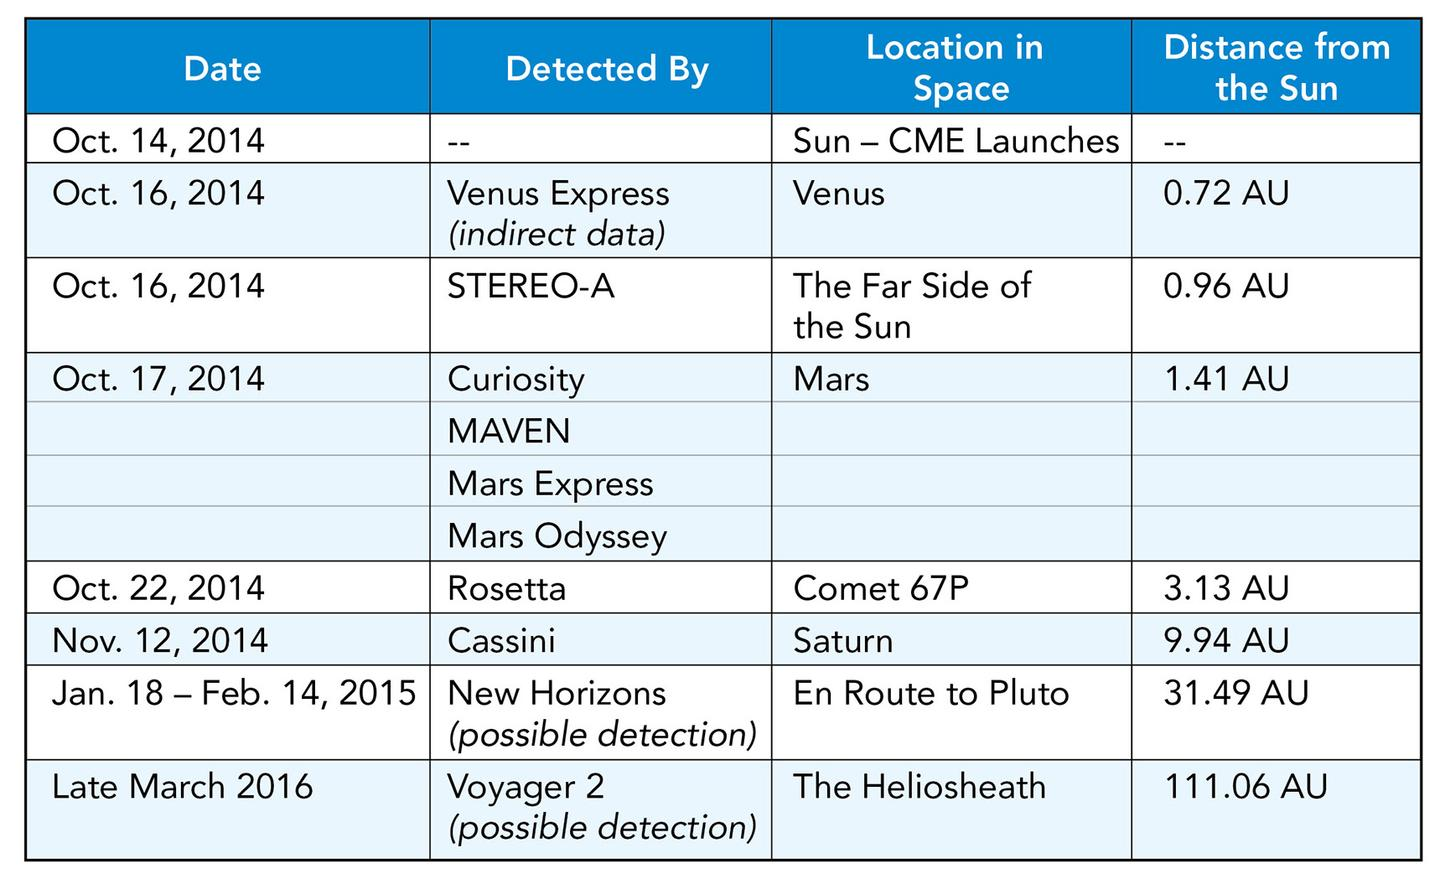 This table charts the path of the coronal mass ejection that erupted from the Sun on October 14, 2014, and was detected across the Solar System by an all-star cast of spacecraft